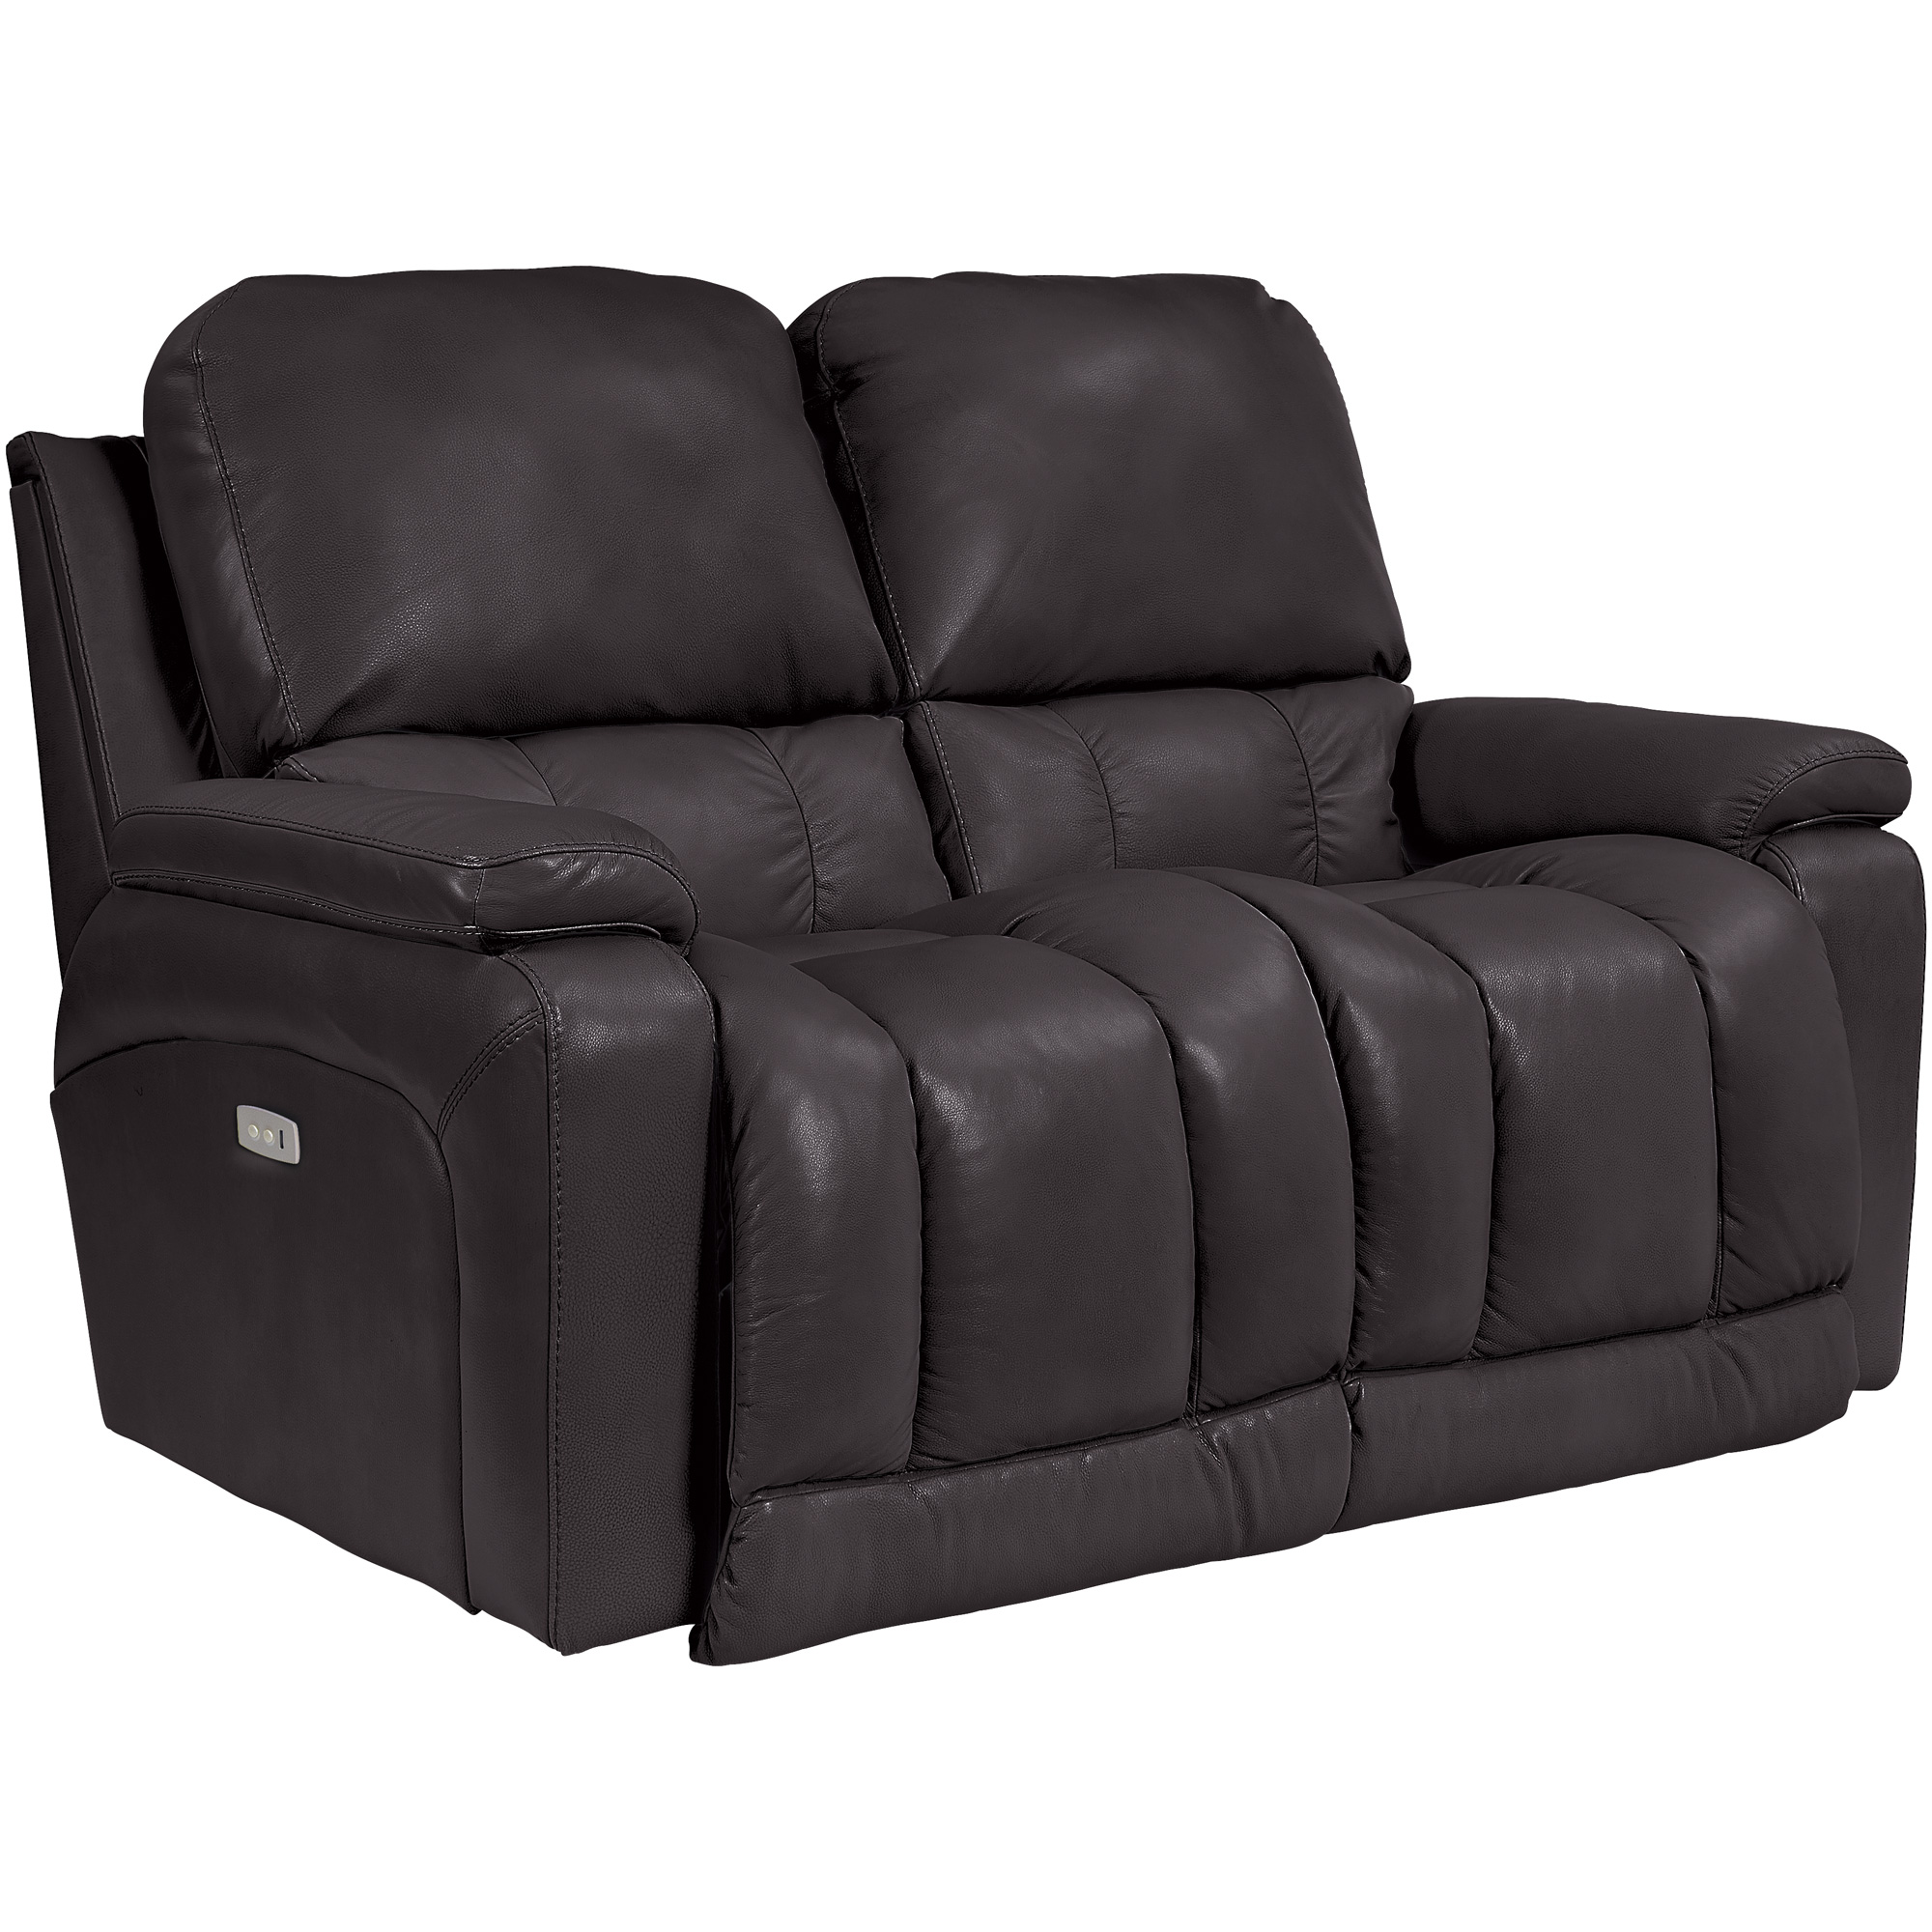 La-Z-Boy | Greyson Chocolate Power Reclining Loveseat Sofa